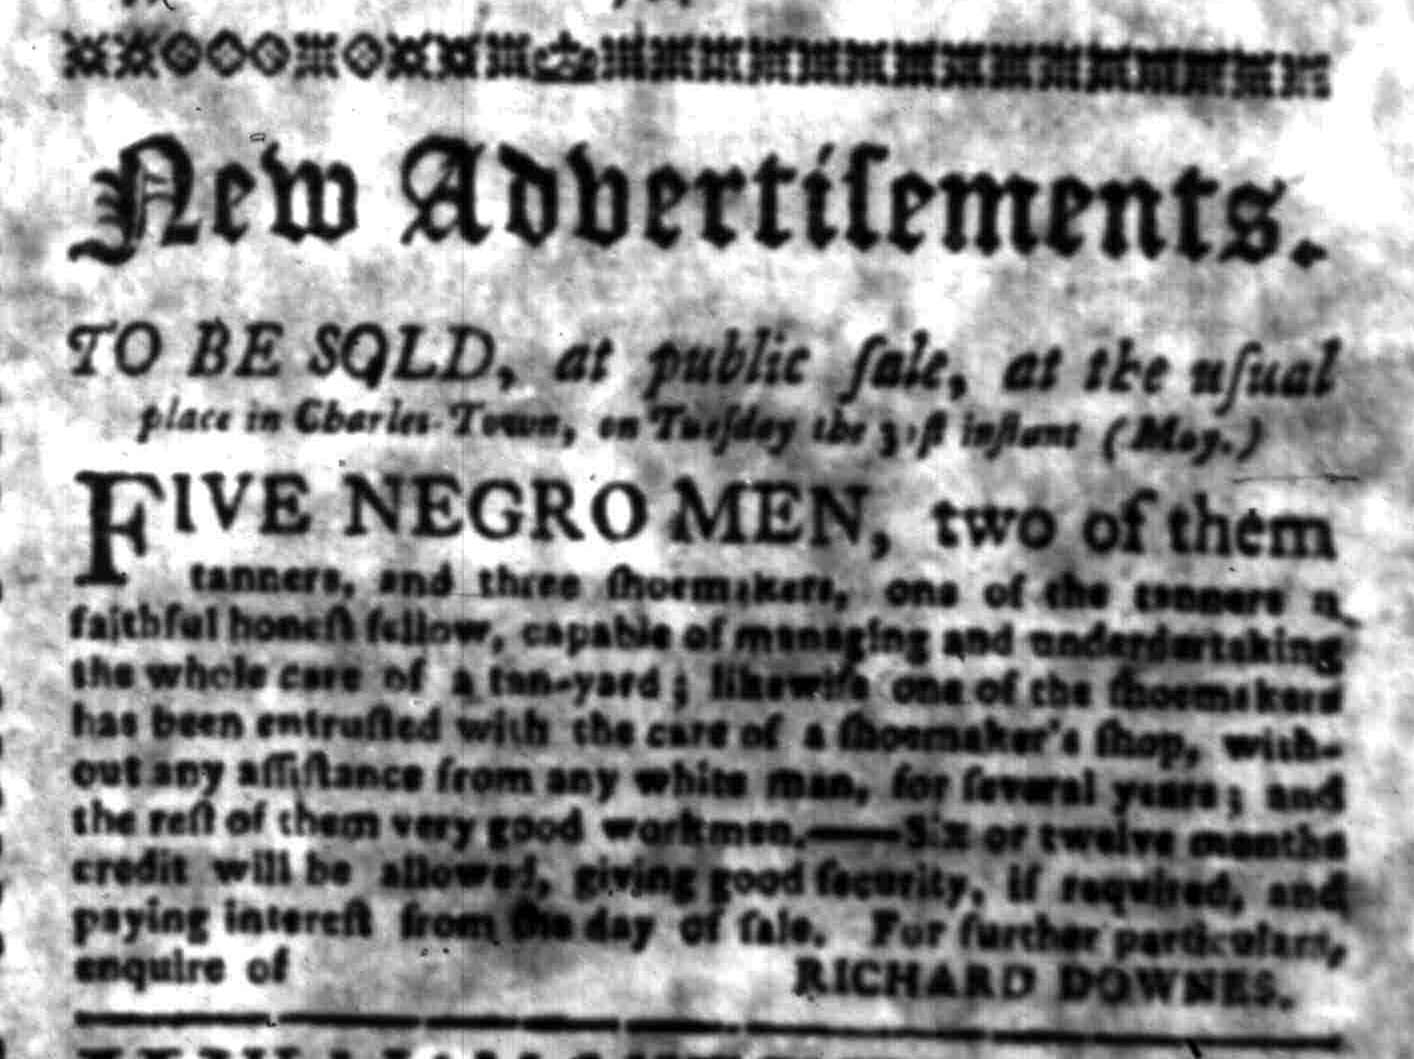 May 23 - South Carolina Gazette Slavery 2